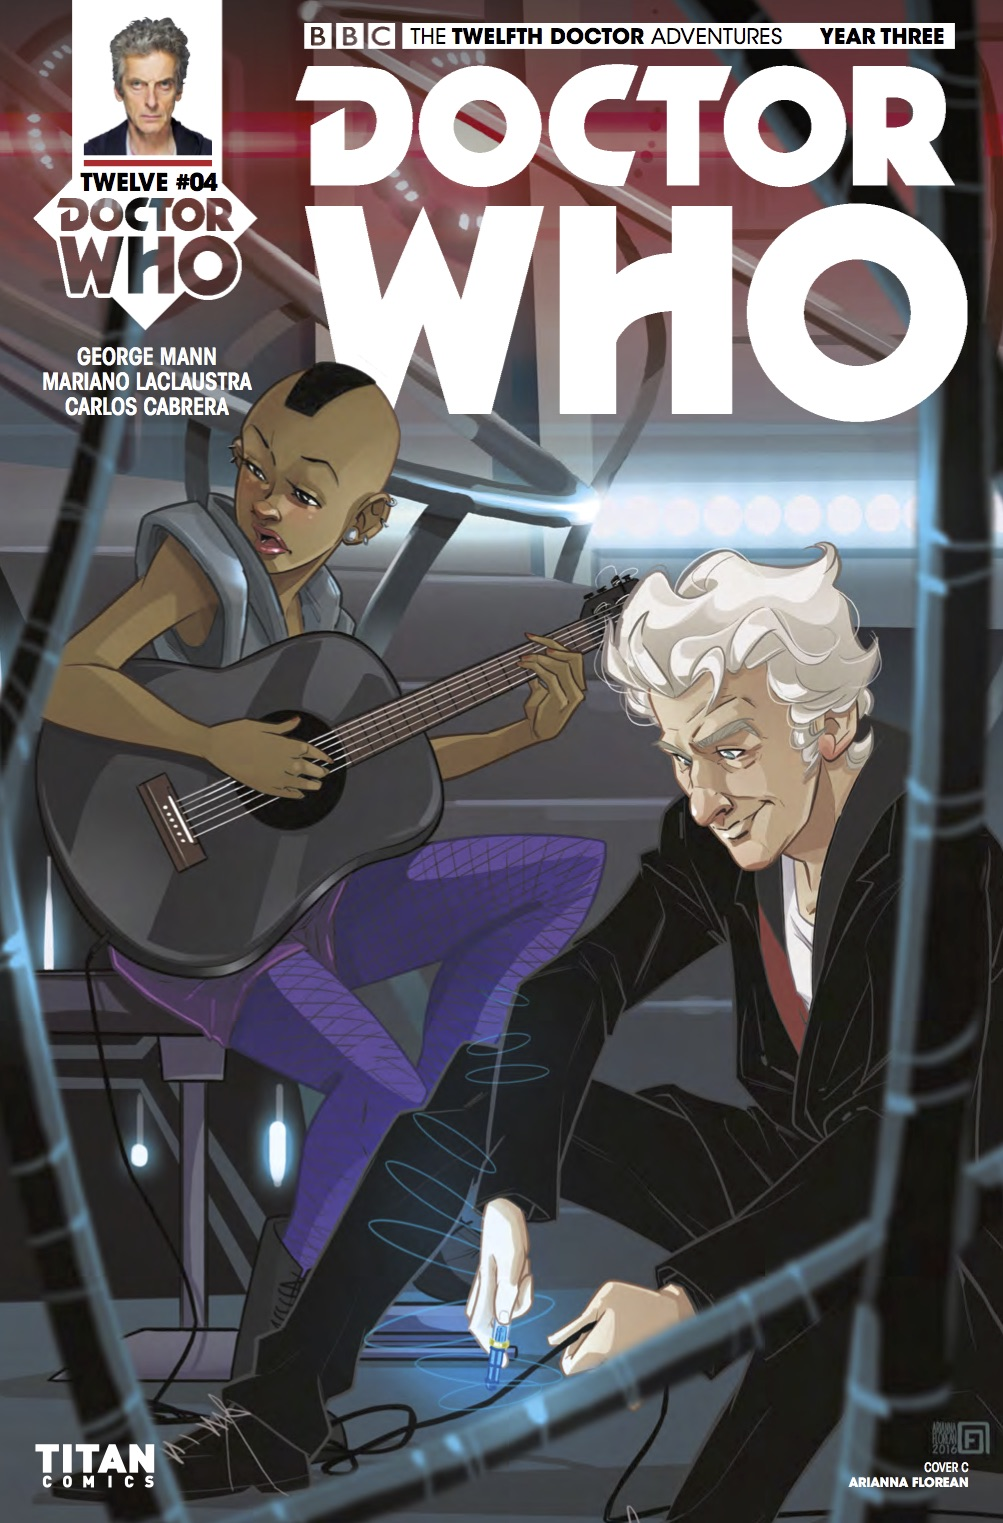 TITAN COMICS - DOCTOR WHO: TWELFTH DOCTOR YEAR 3 #4​ -Cover C: Adrianna Florian